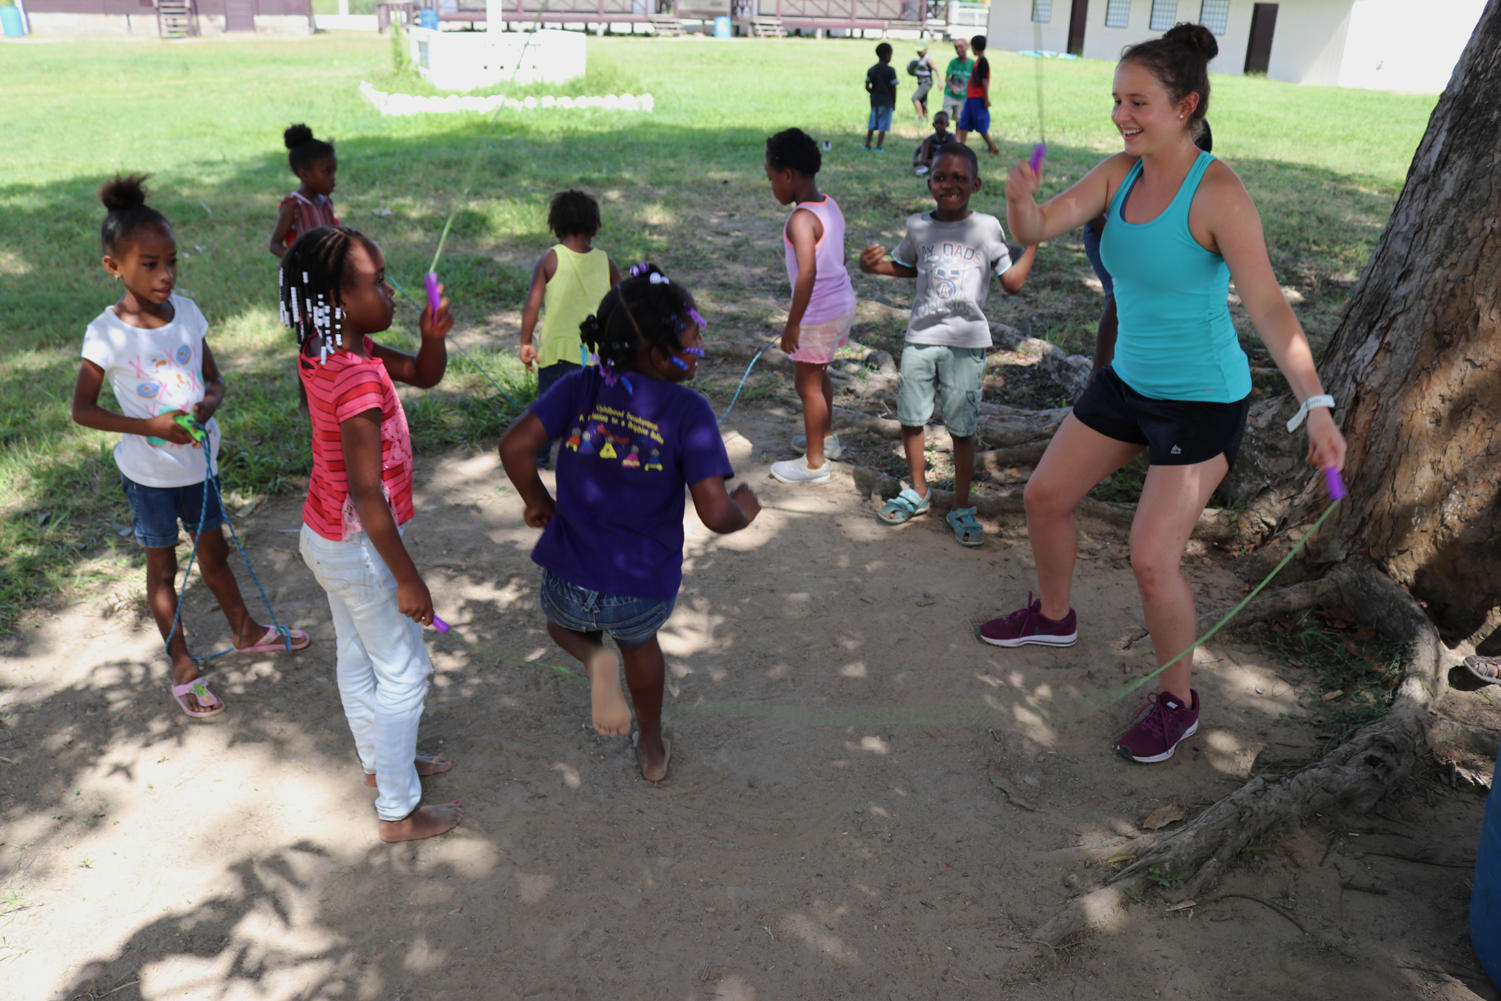 Public relations junior Paige Carter twirls the jump rope around for the children in Belize. Carter was one of 12 Loyola athletes who went on the trip. Photo credit: Rev. Ted Dziak S.J.